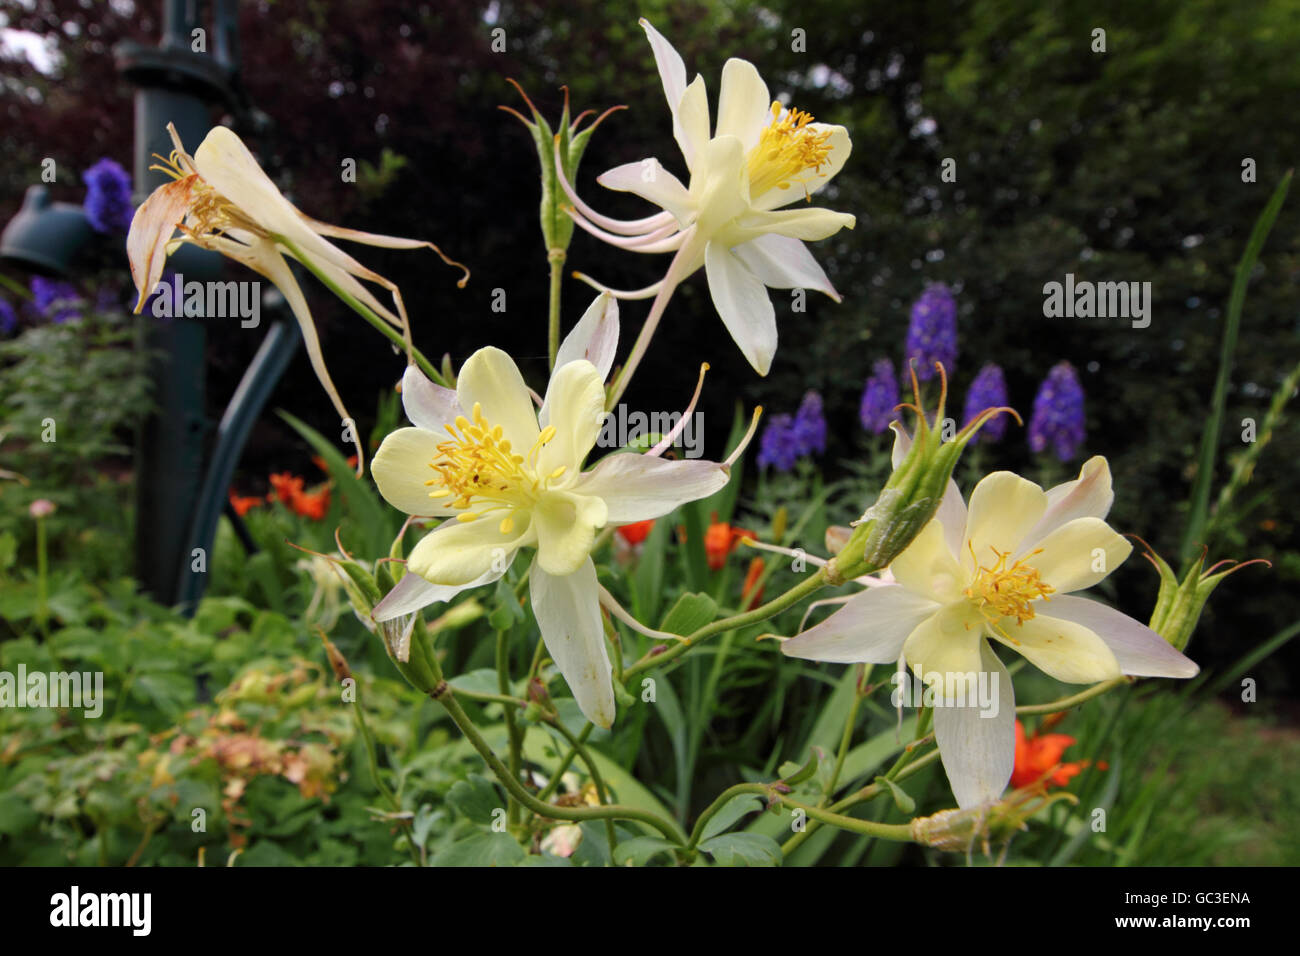 White Yellow Flowers Columbine Aquilegia Stock Photos White Yellow